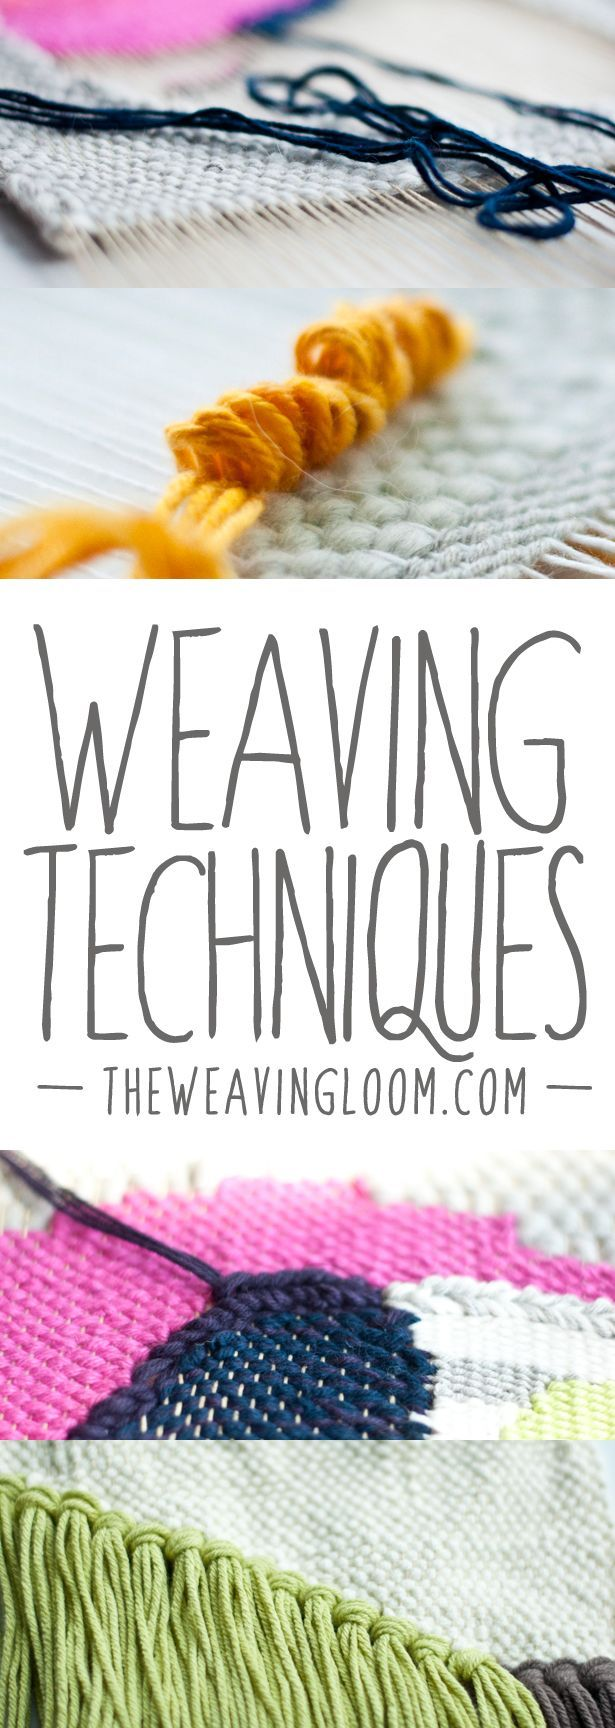 A roundup of Weaving Techniques tutorials - this blog has great information for beginners!